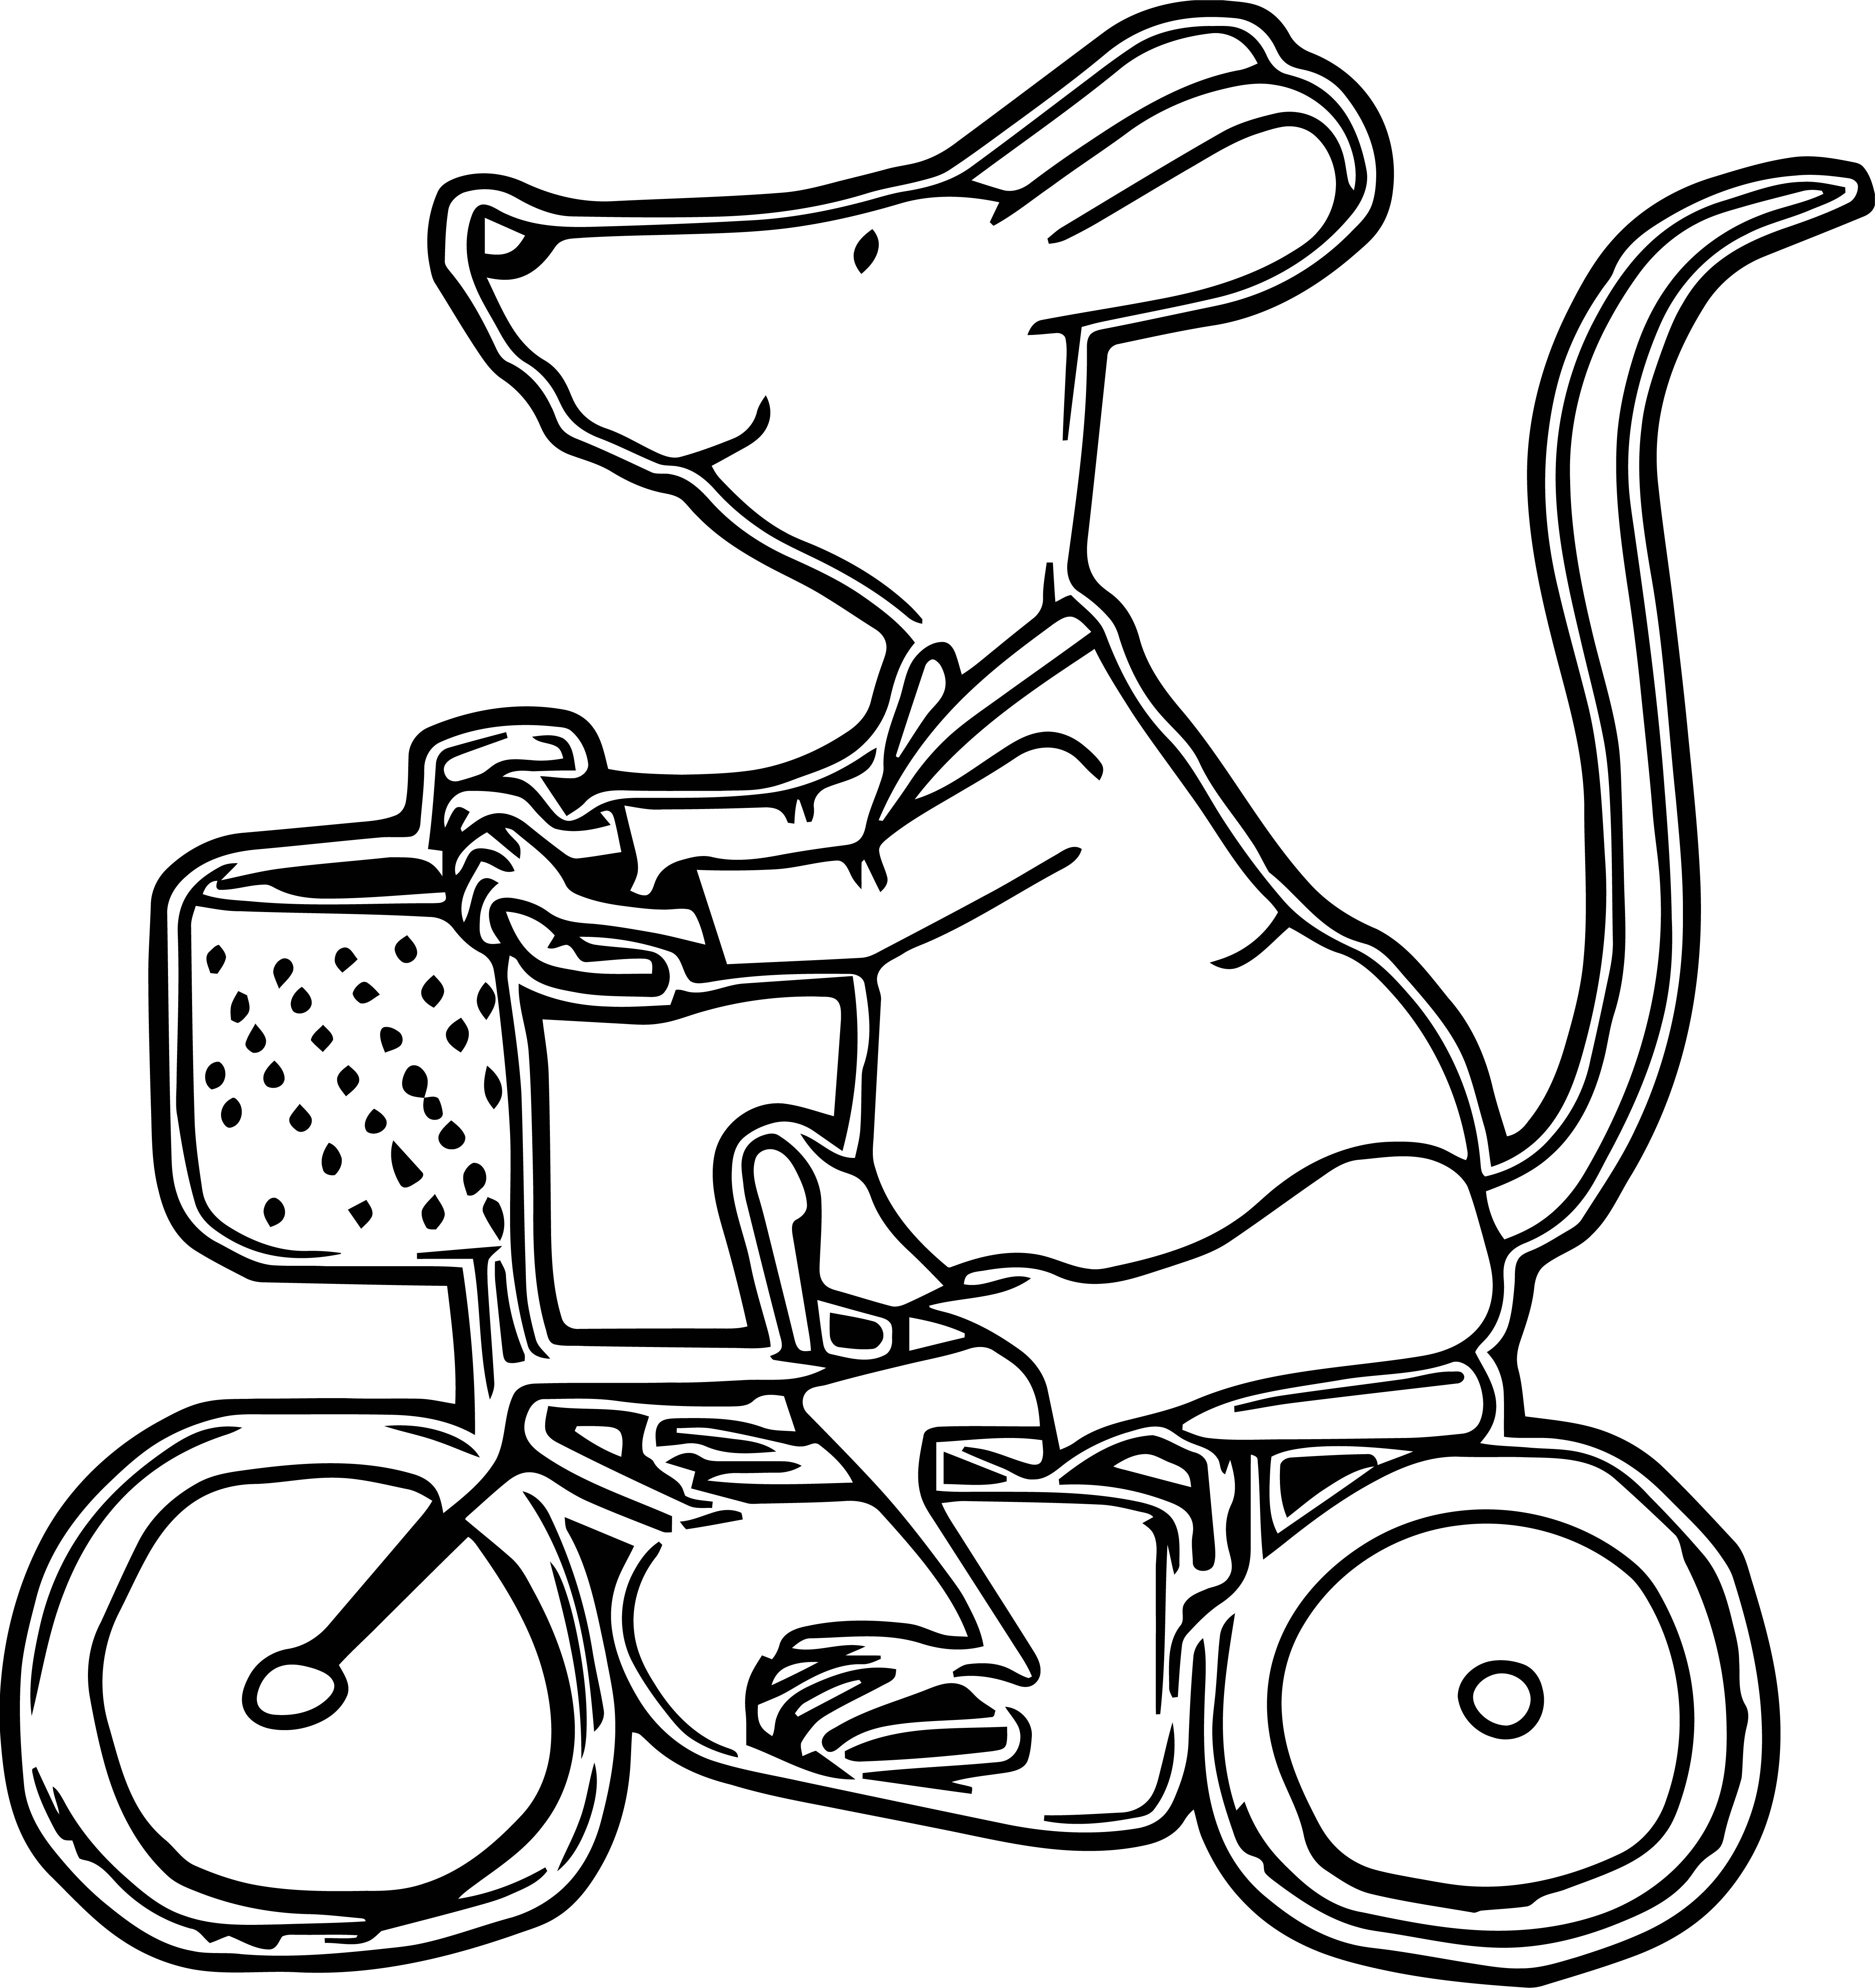 Mouse Jpeg Coloring Page 14